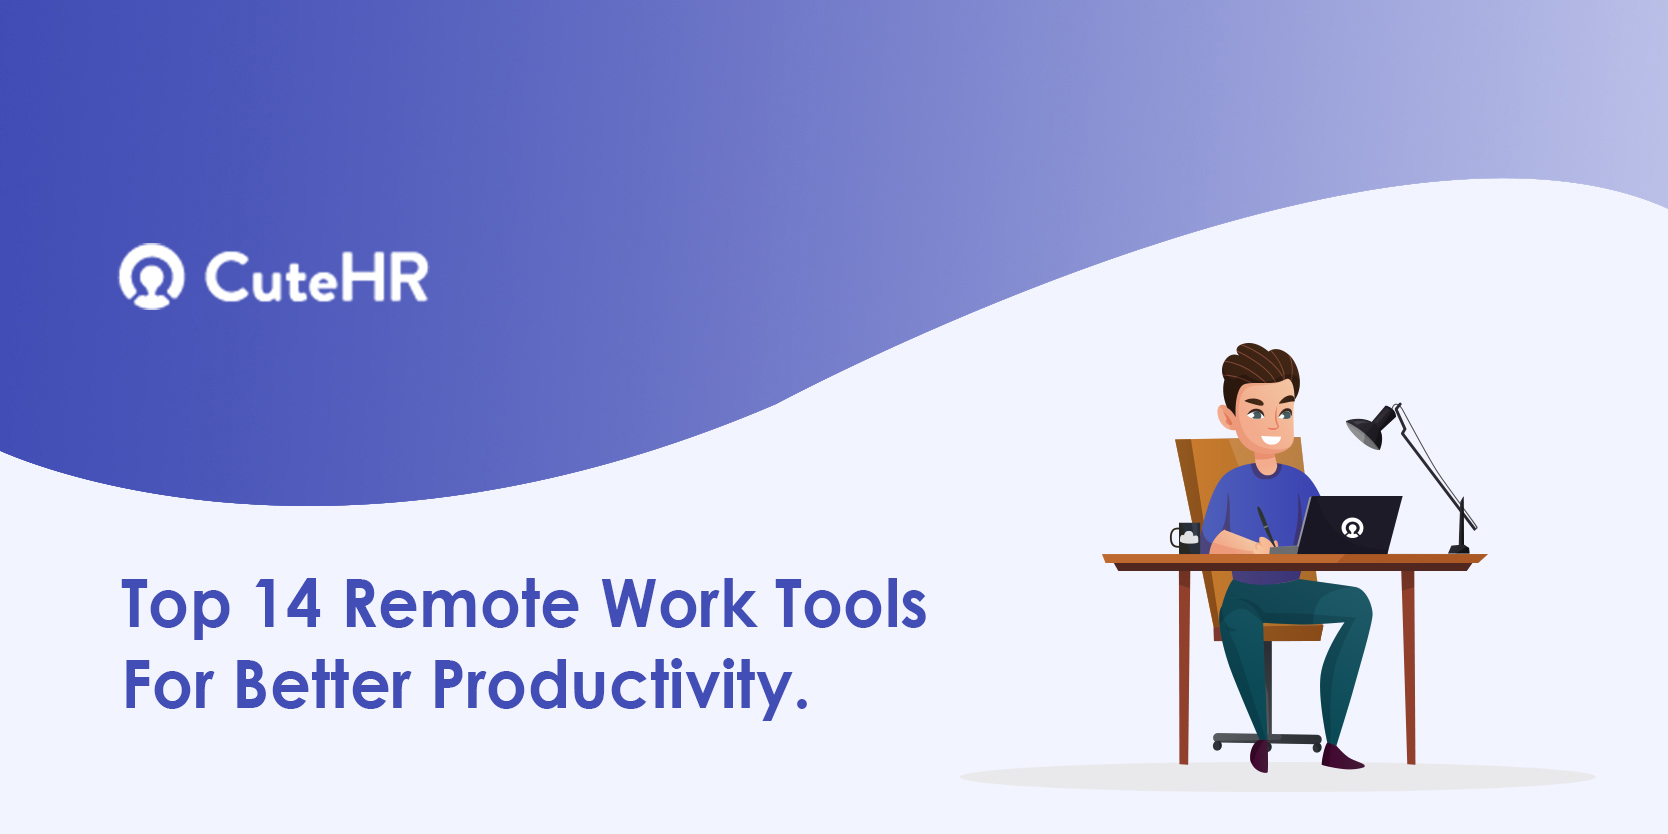 Top 14 Remote Work Tools For Better Productivity